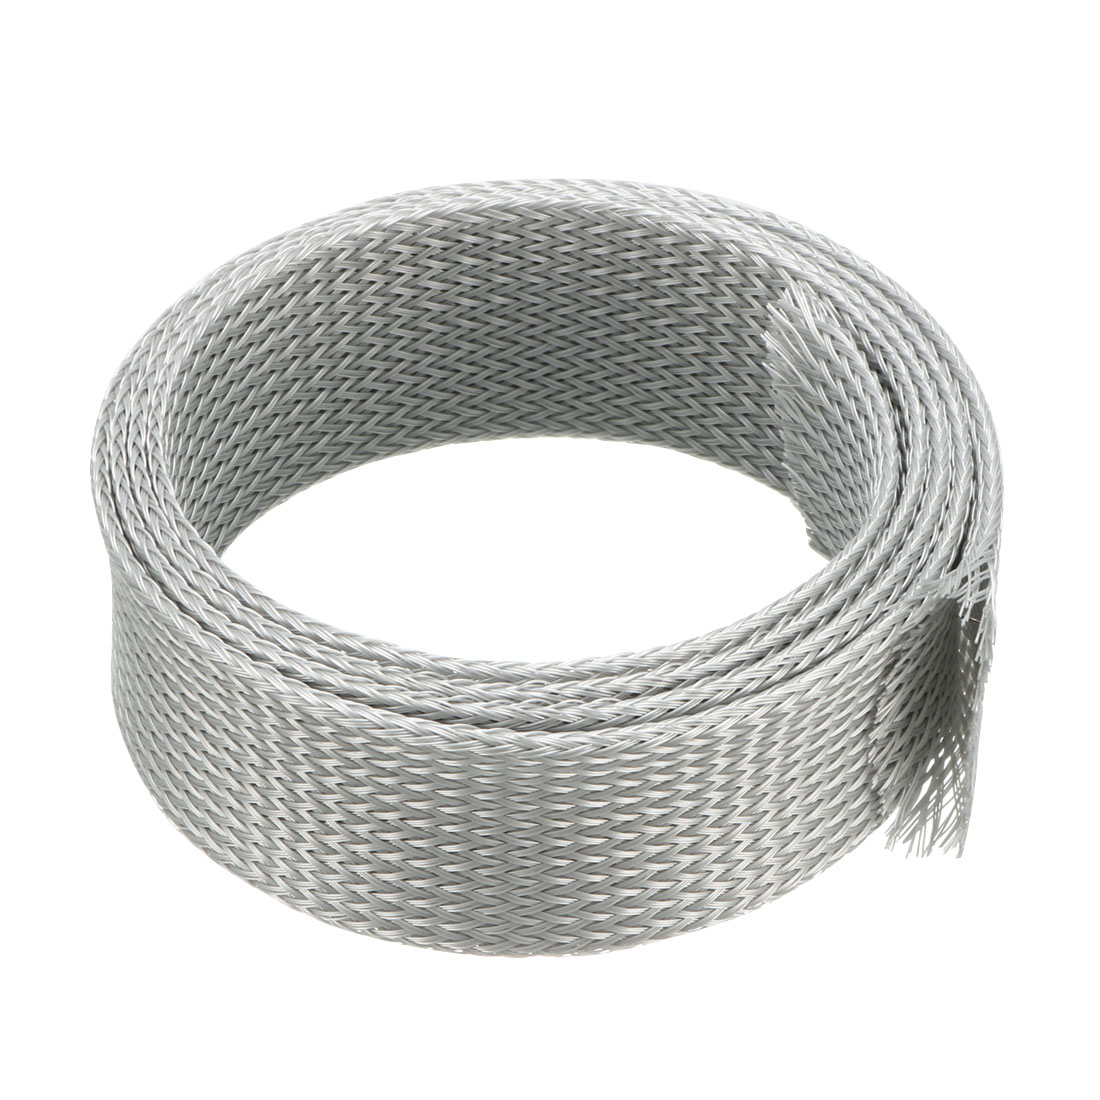 30mm Dia Tight Braided PET Expandable Sleeving Cable Wire Wrap Sheath Gray 1M